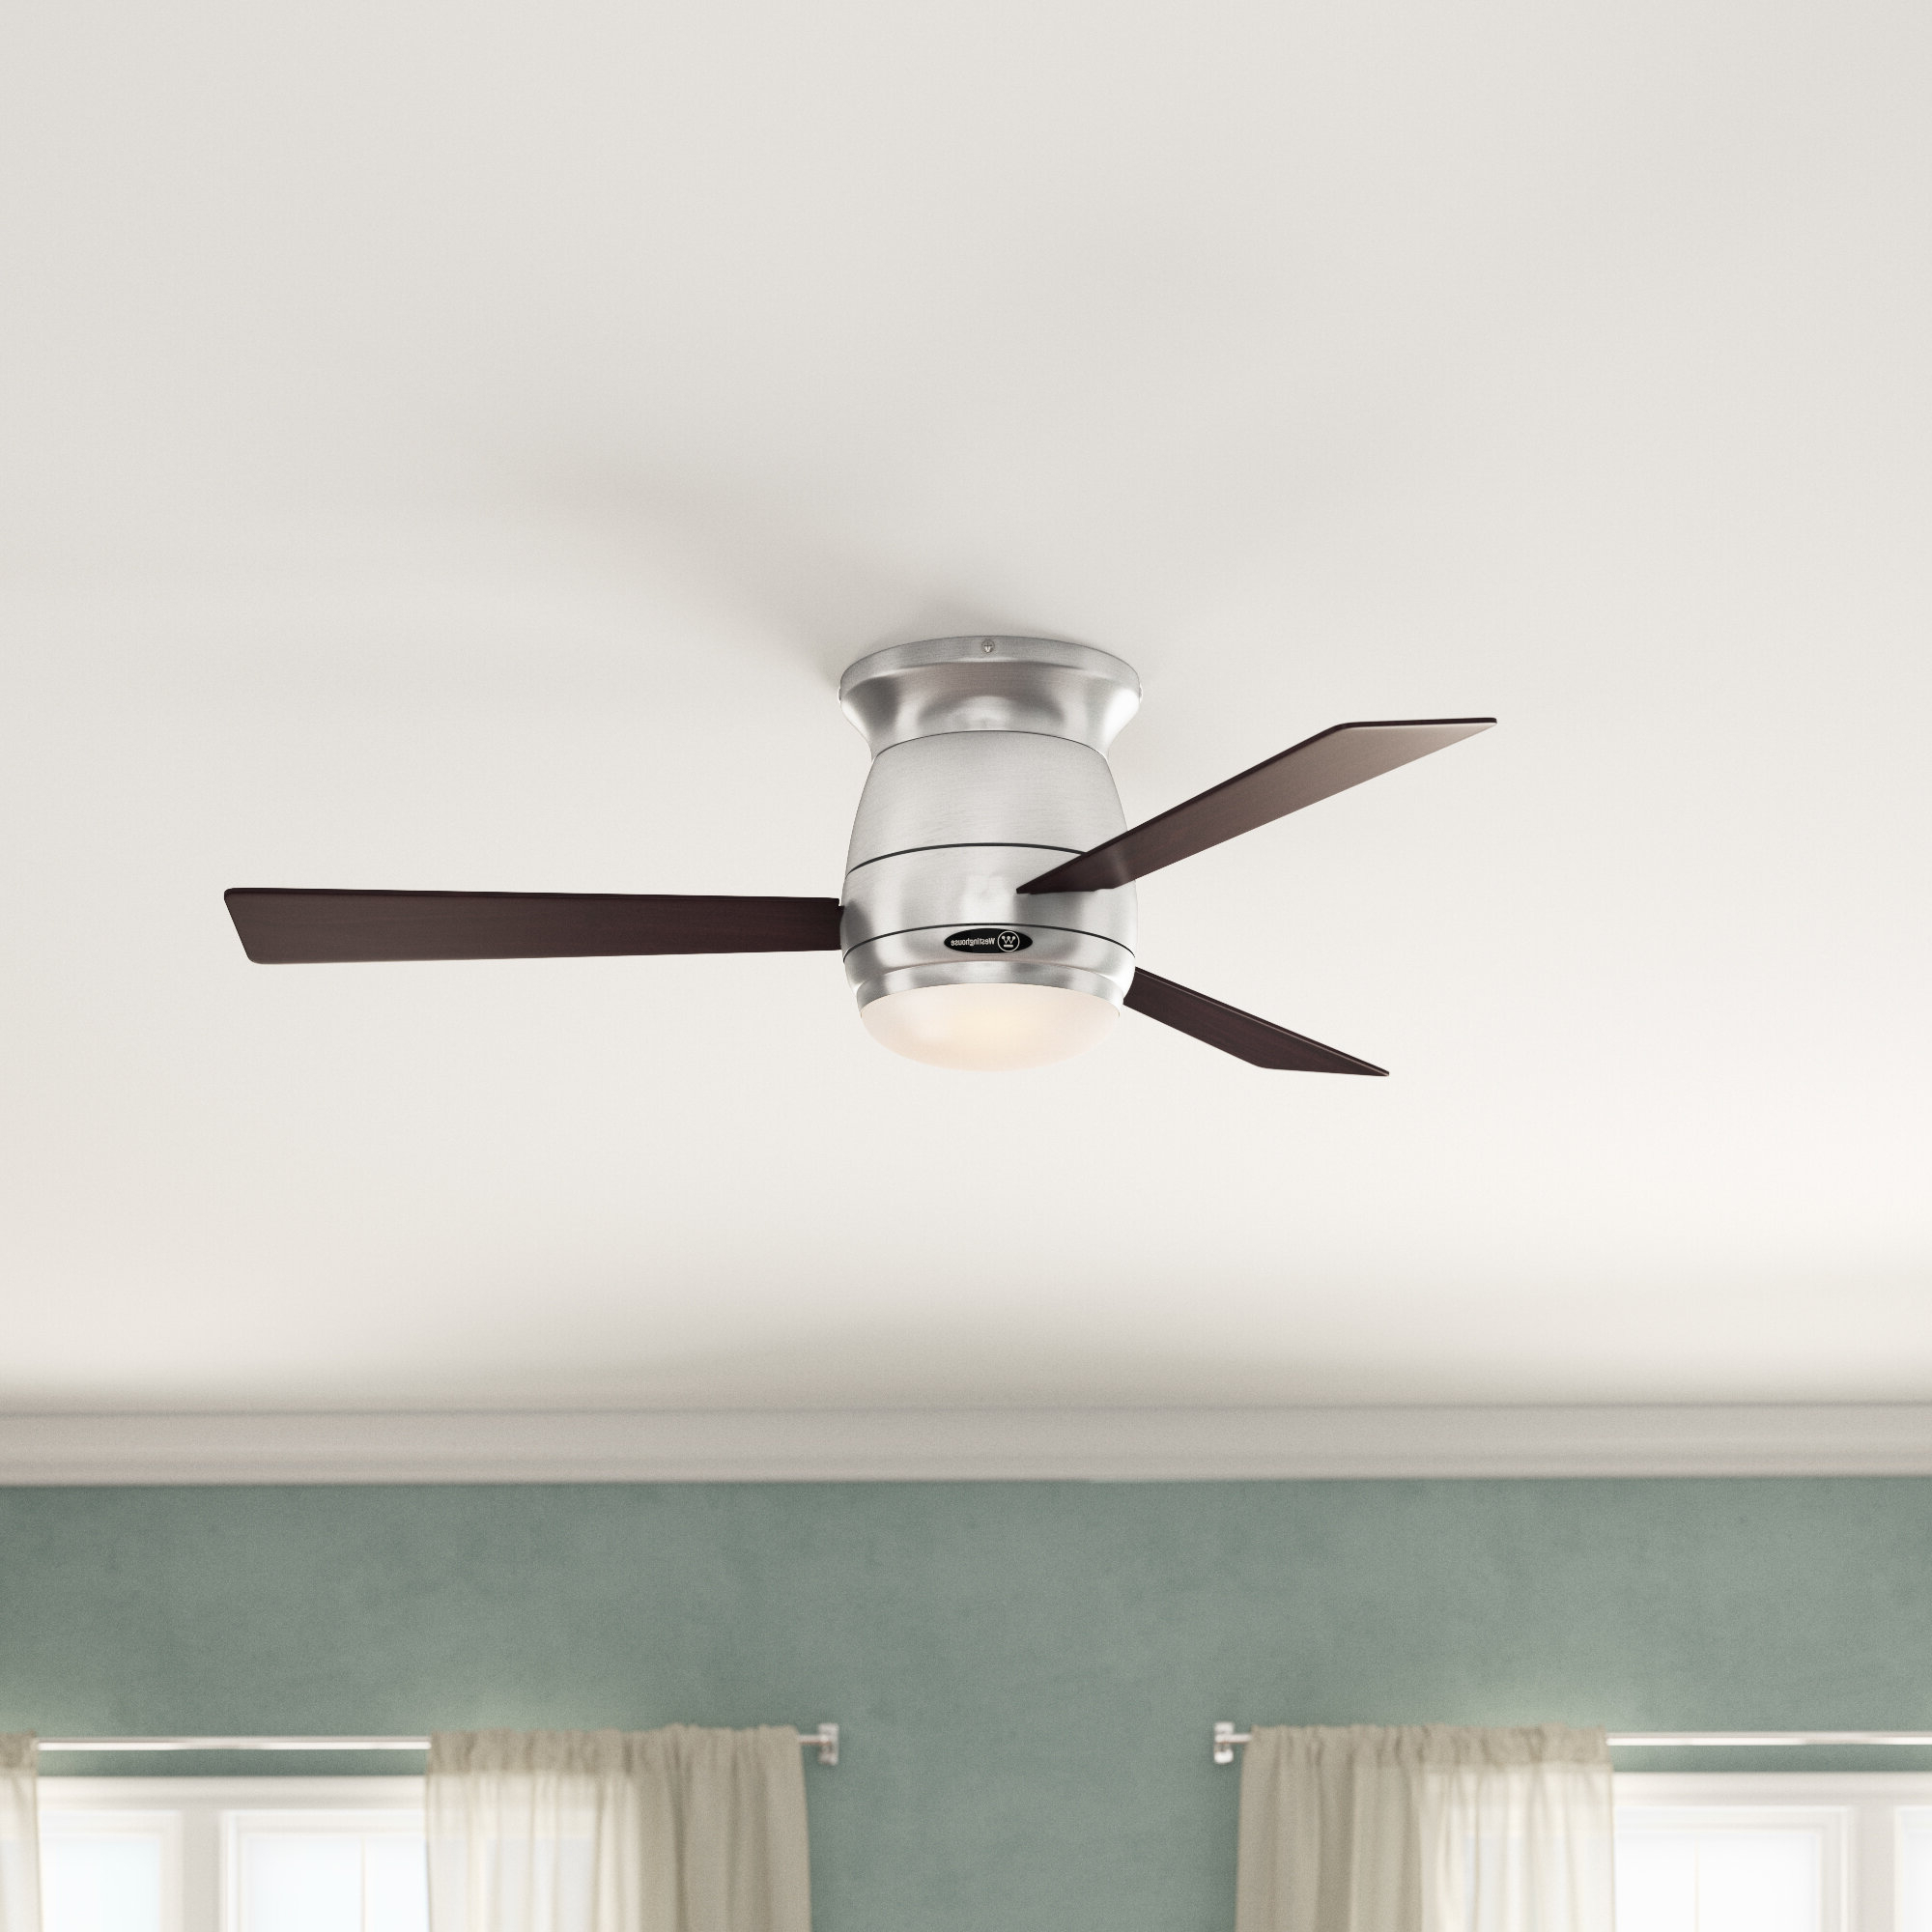 "Embrace 3 Blade Ceiling Fans Intended For 2019 44"" Yamashita 3 Blade Led Ceiling Fan With Remote (View 18 of 20)"